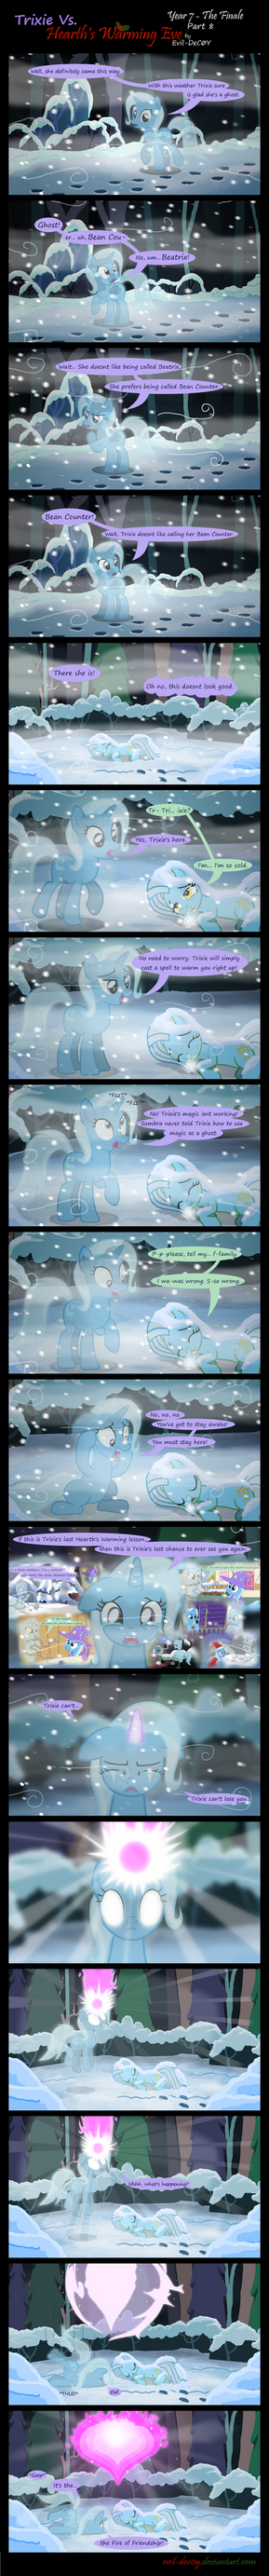 Trixie Vs. Hearth's Warming Eve: Finale (Part 8)